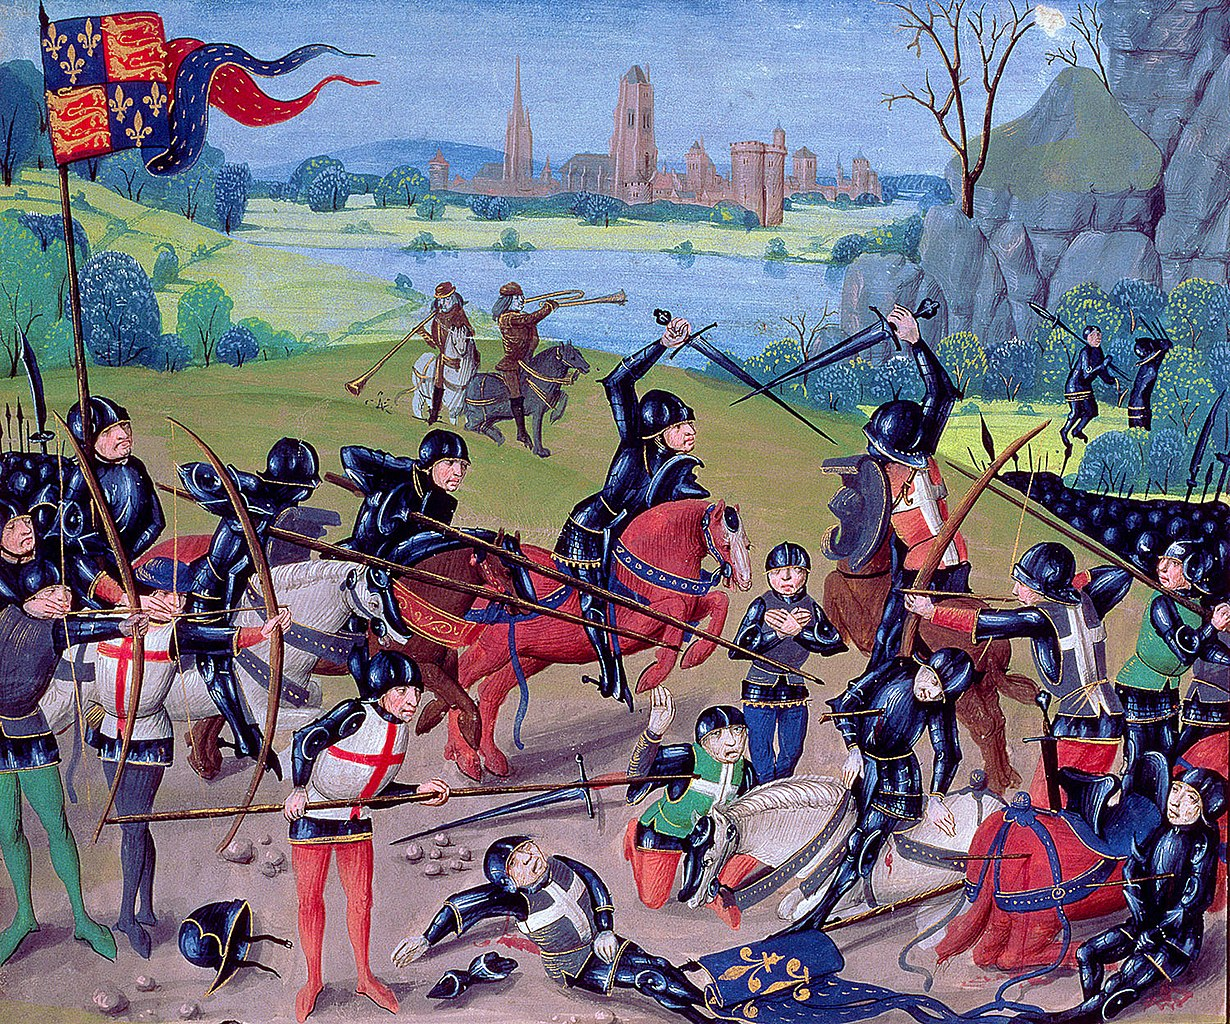 Battle of Agincourt, from the 'St. Alban's Chronicle' by Thomas Walsingham, 15th century, English with Flemish illuminations